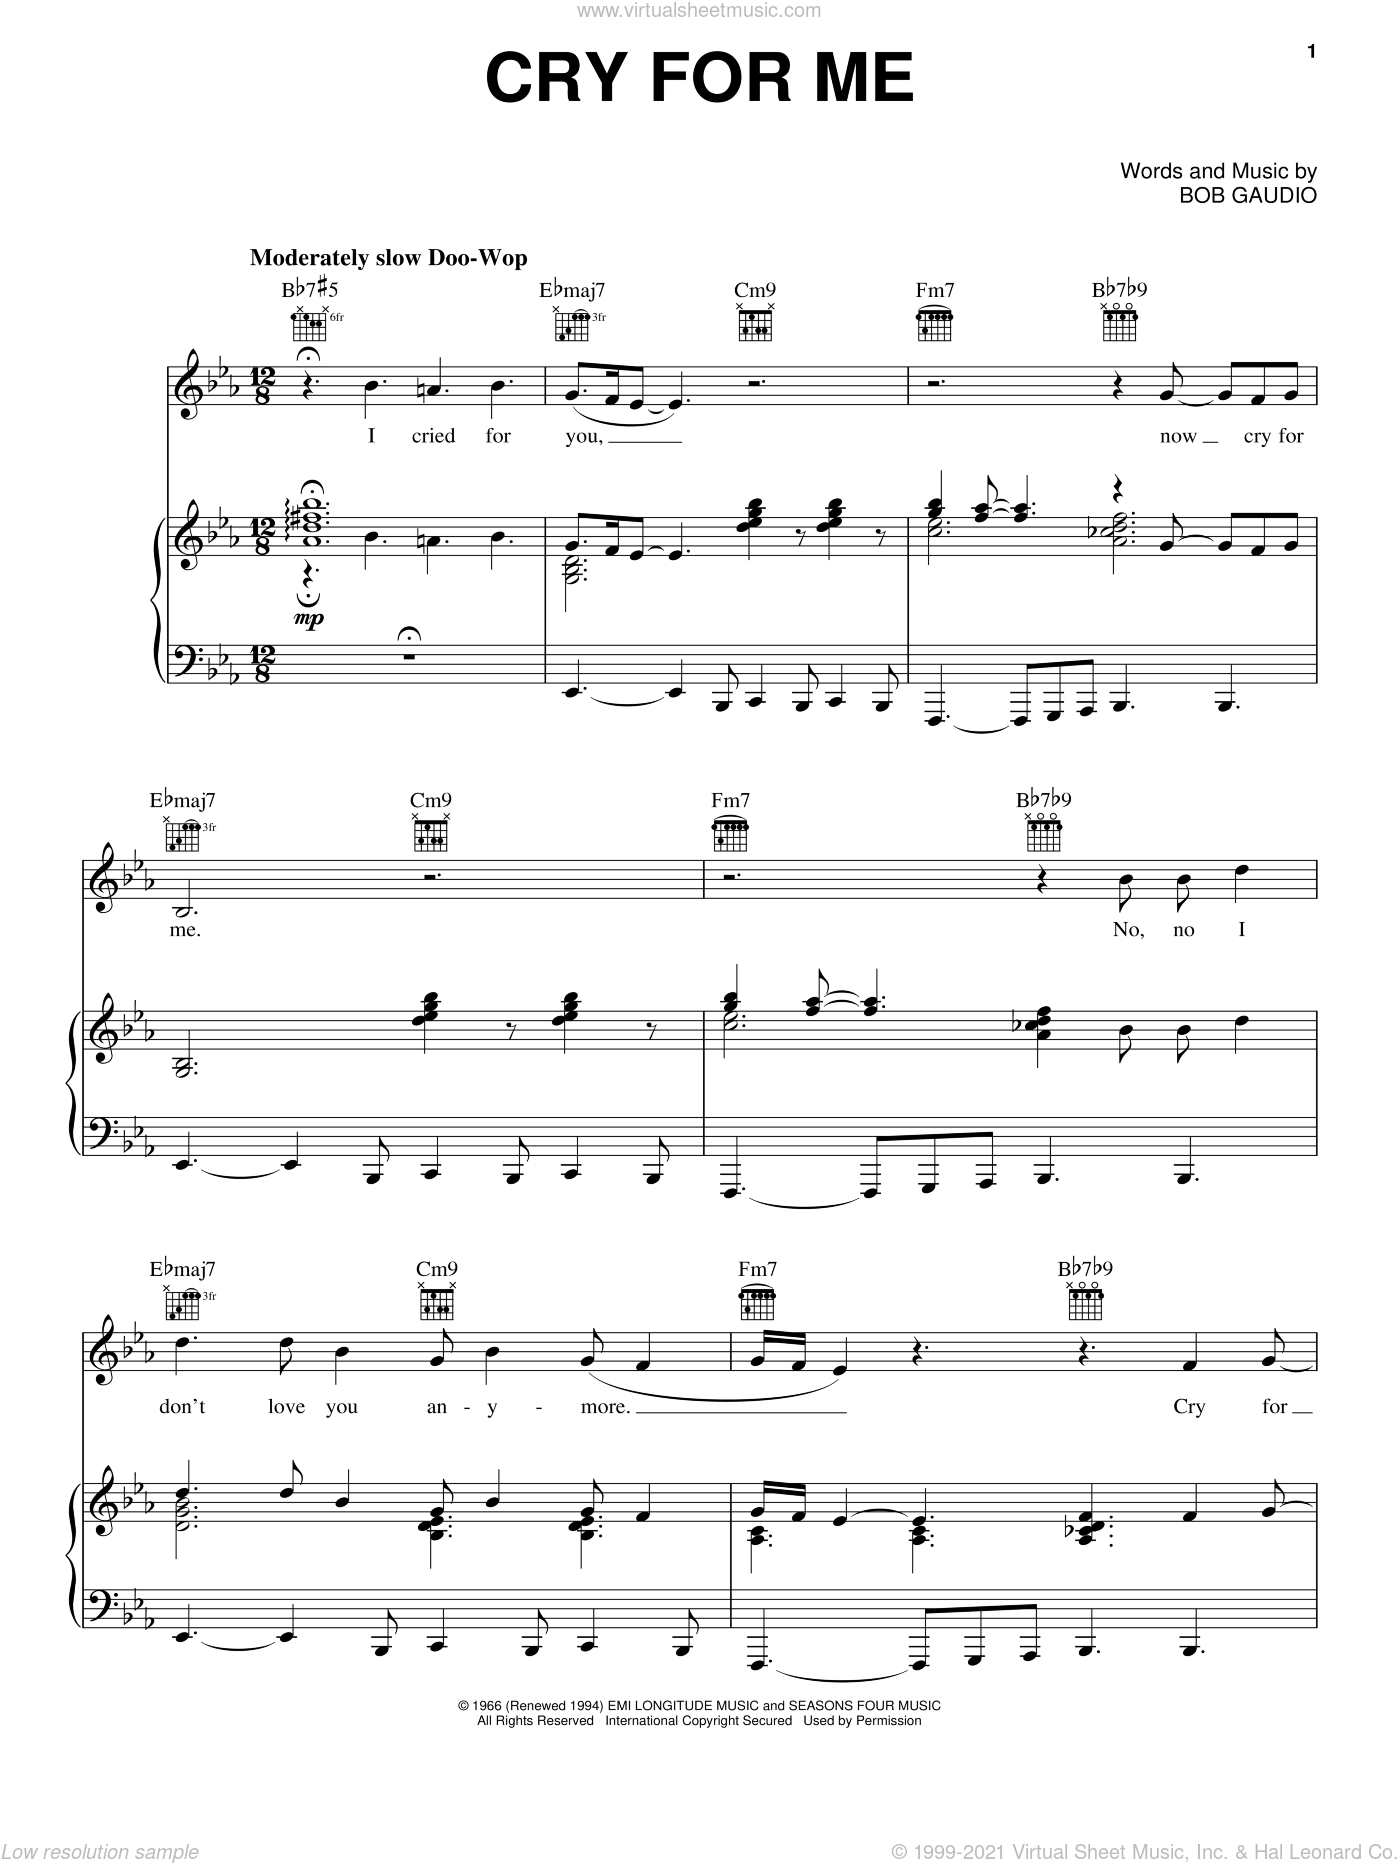 Cry For Me sheet music for voice, piano or guitar by Frankie Valli, Jersey Boys (Musical) and Bob Gaudio, intermediate skill level